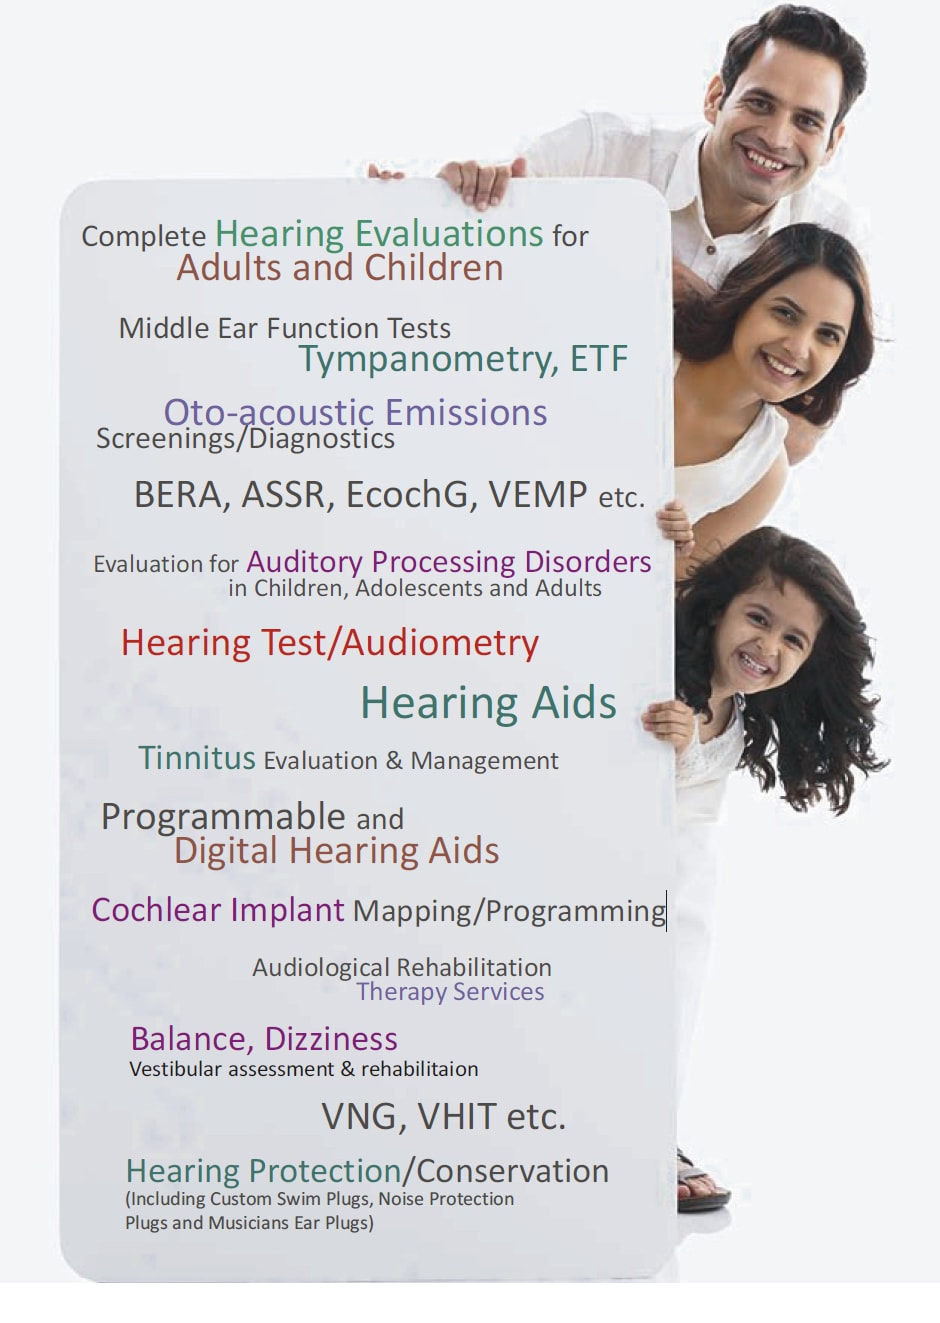 Best Hearing Aid Dealer in Delhi, Noida, Gurugram